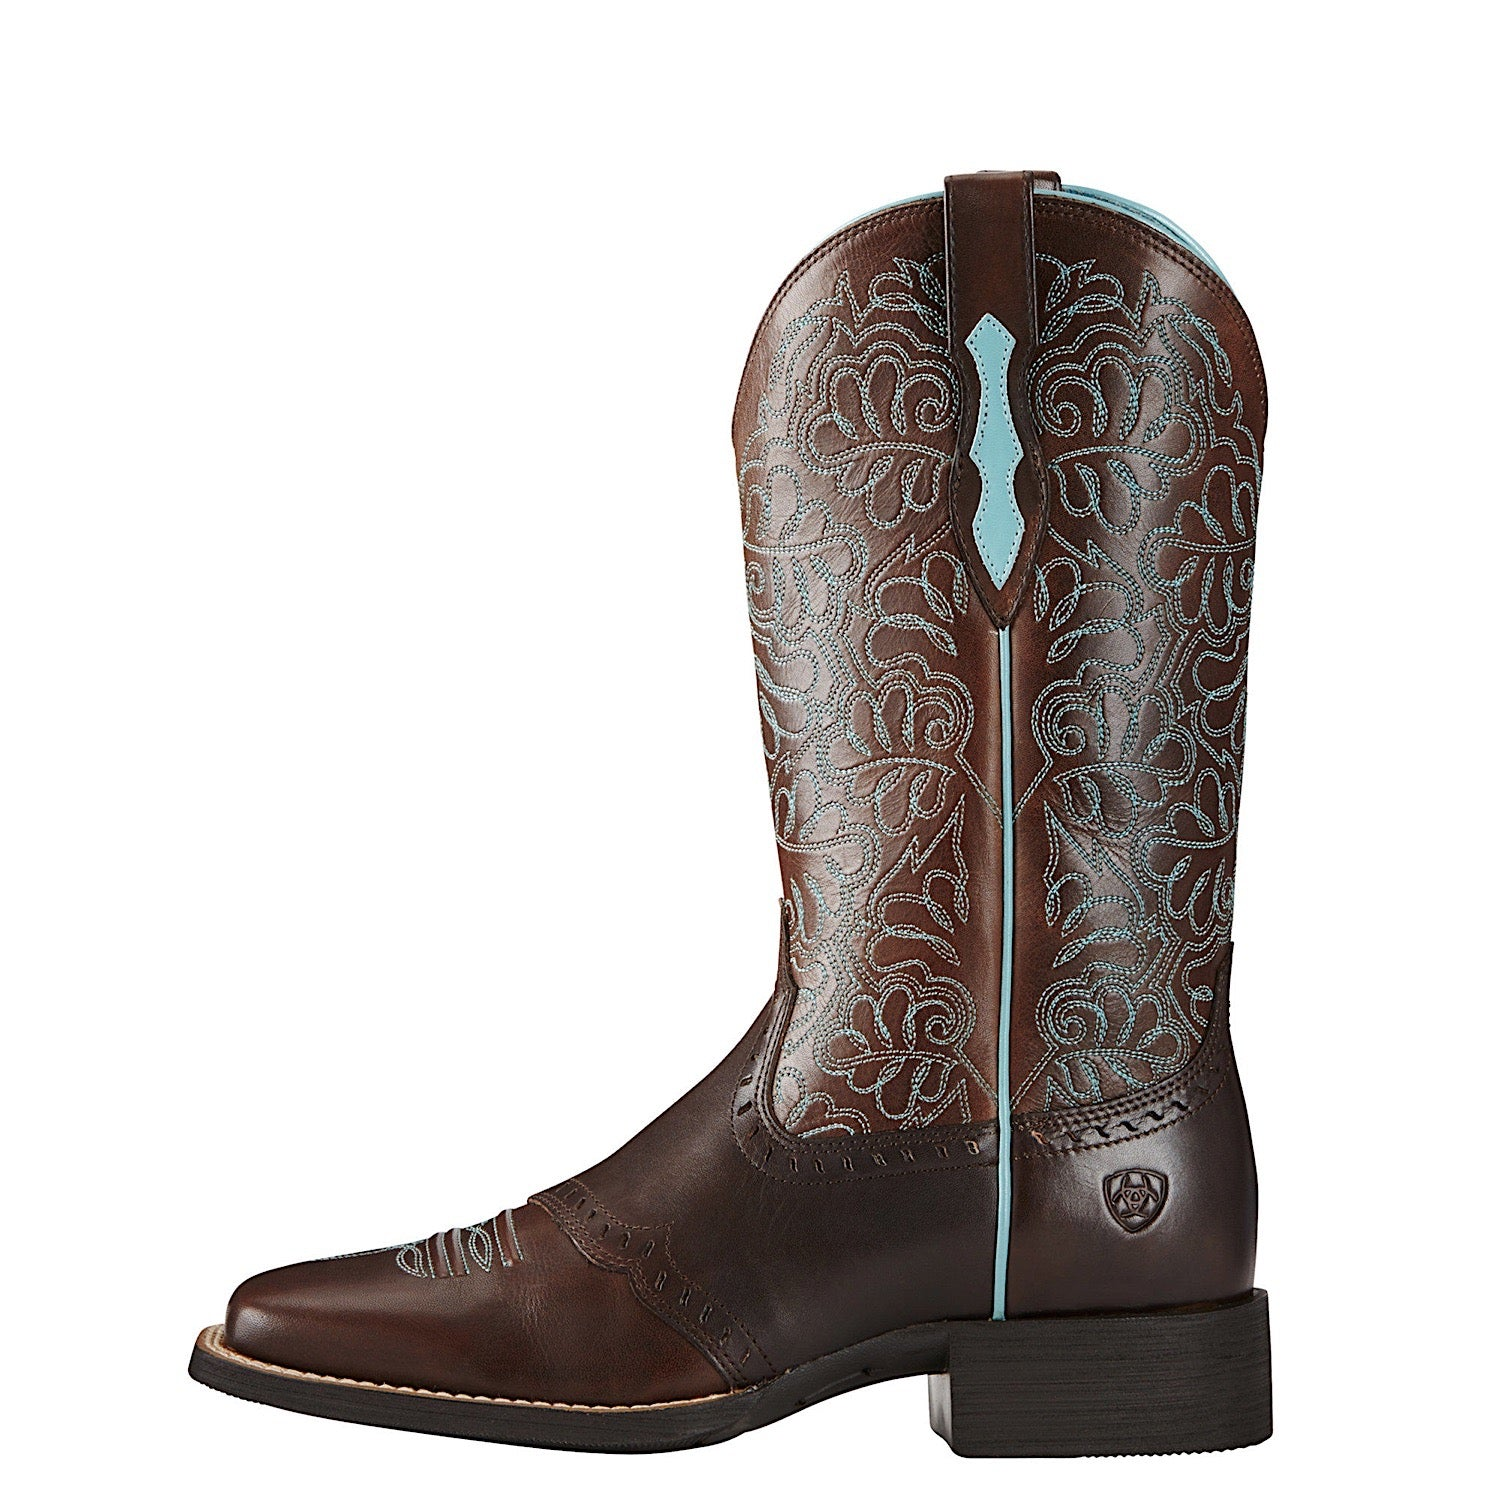 Ariat Brown and Turquoise Round Up Remuda Boots